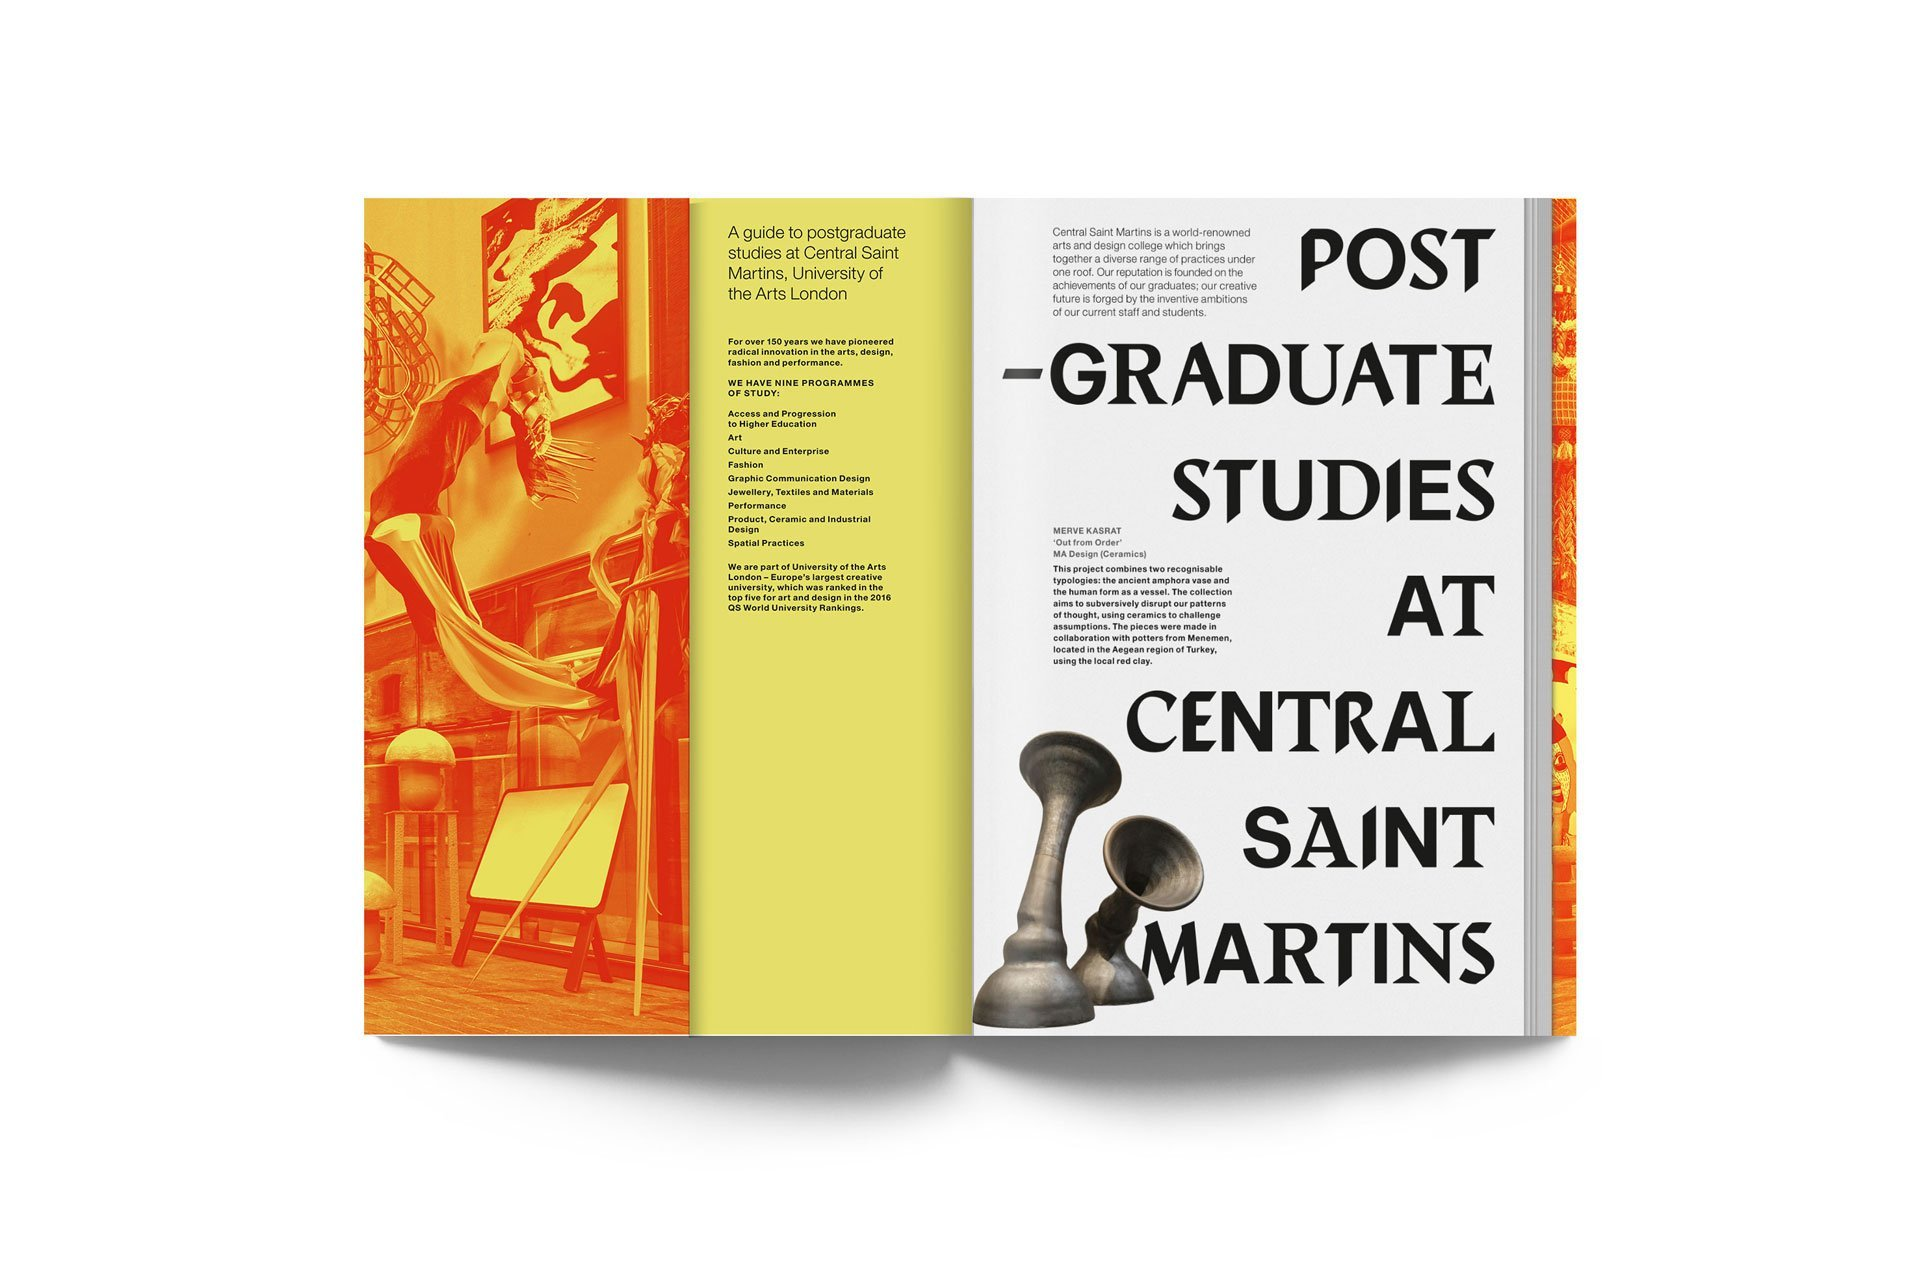 Postgraduate studies at Central Saint Martins. 2nd edition 9